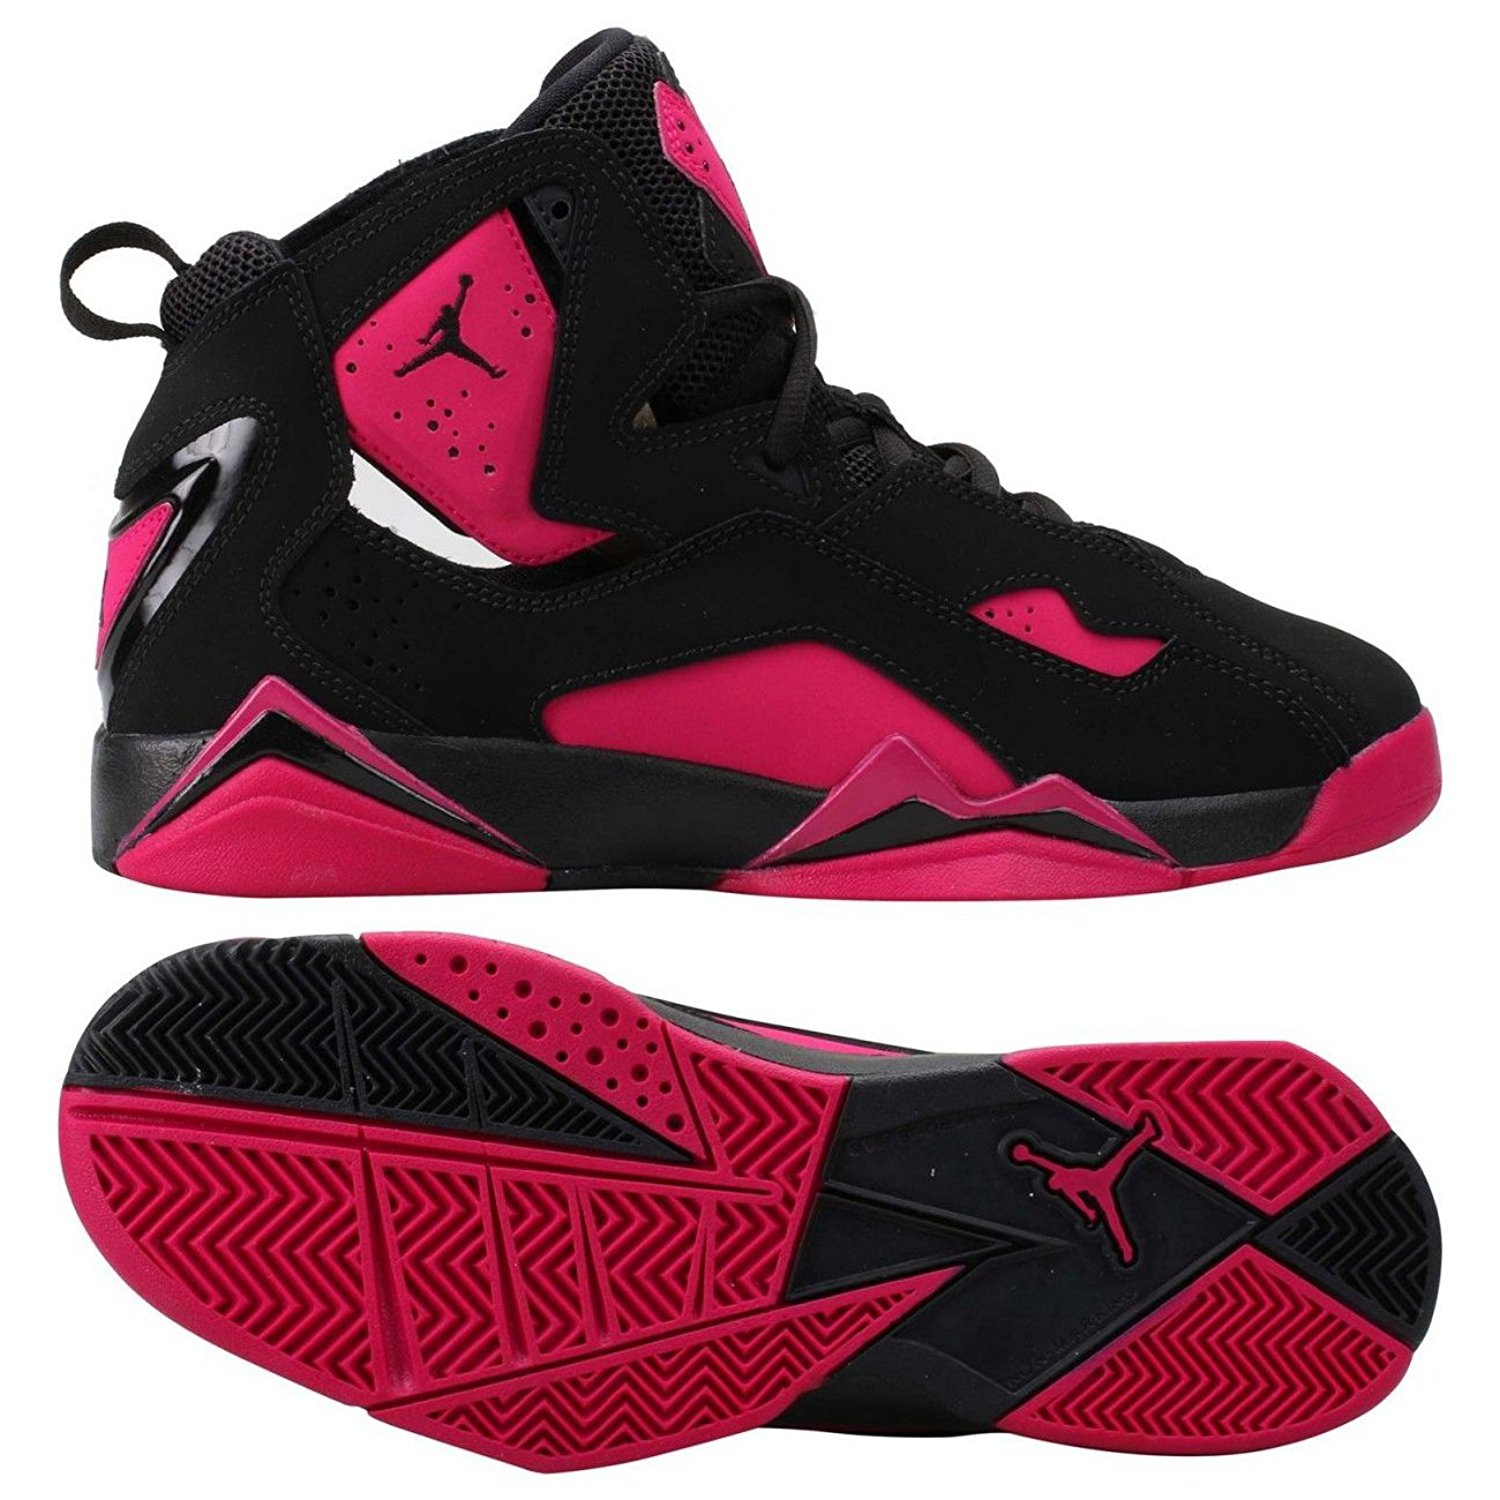 11dc1ee7e55eb9 Get Quotations · Nike Air Jordan True Flight GG 342774-006 Black Sport  Fuchsia Kids Shoes